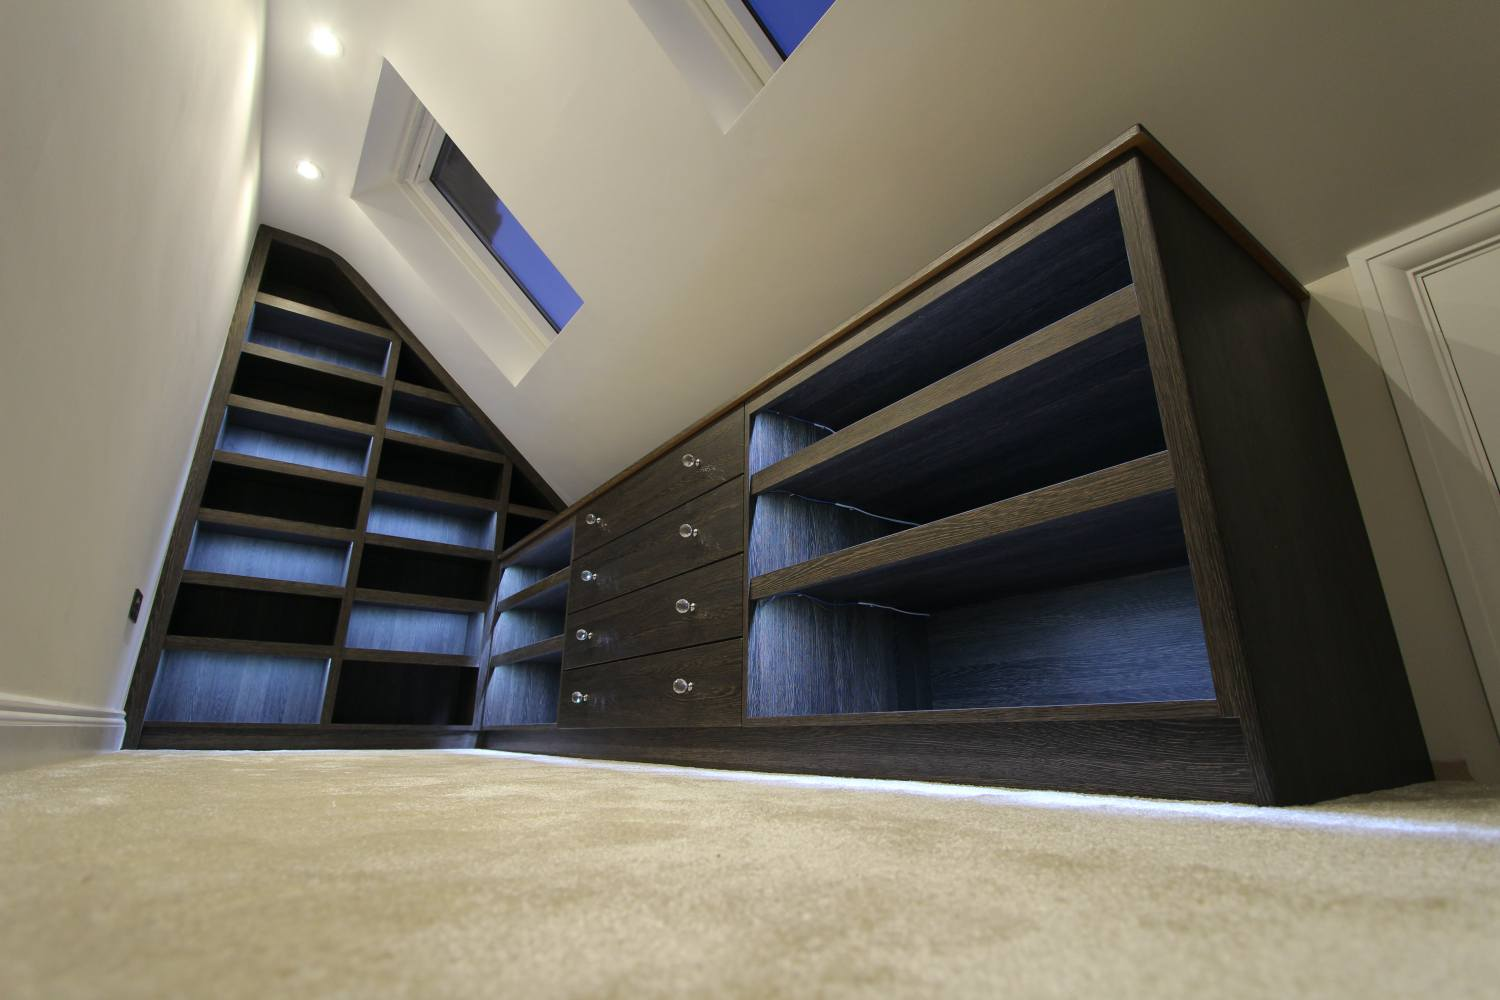 Shoe shelving and drawers with LED lights on, Winchmore Hill N21